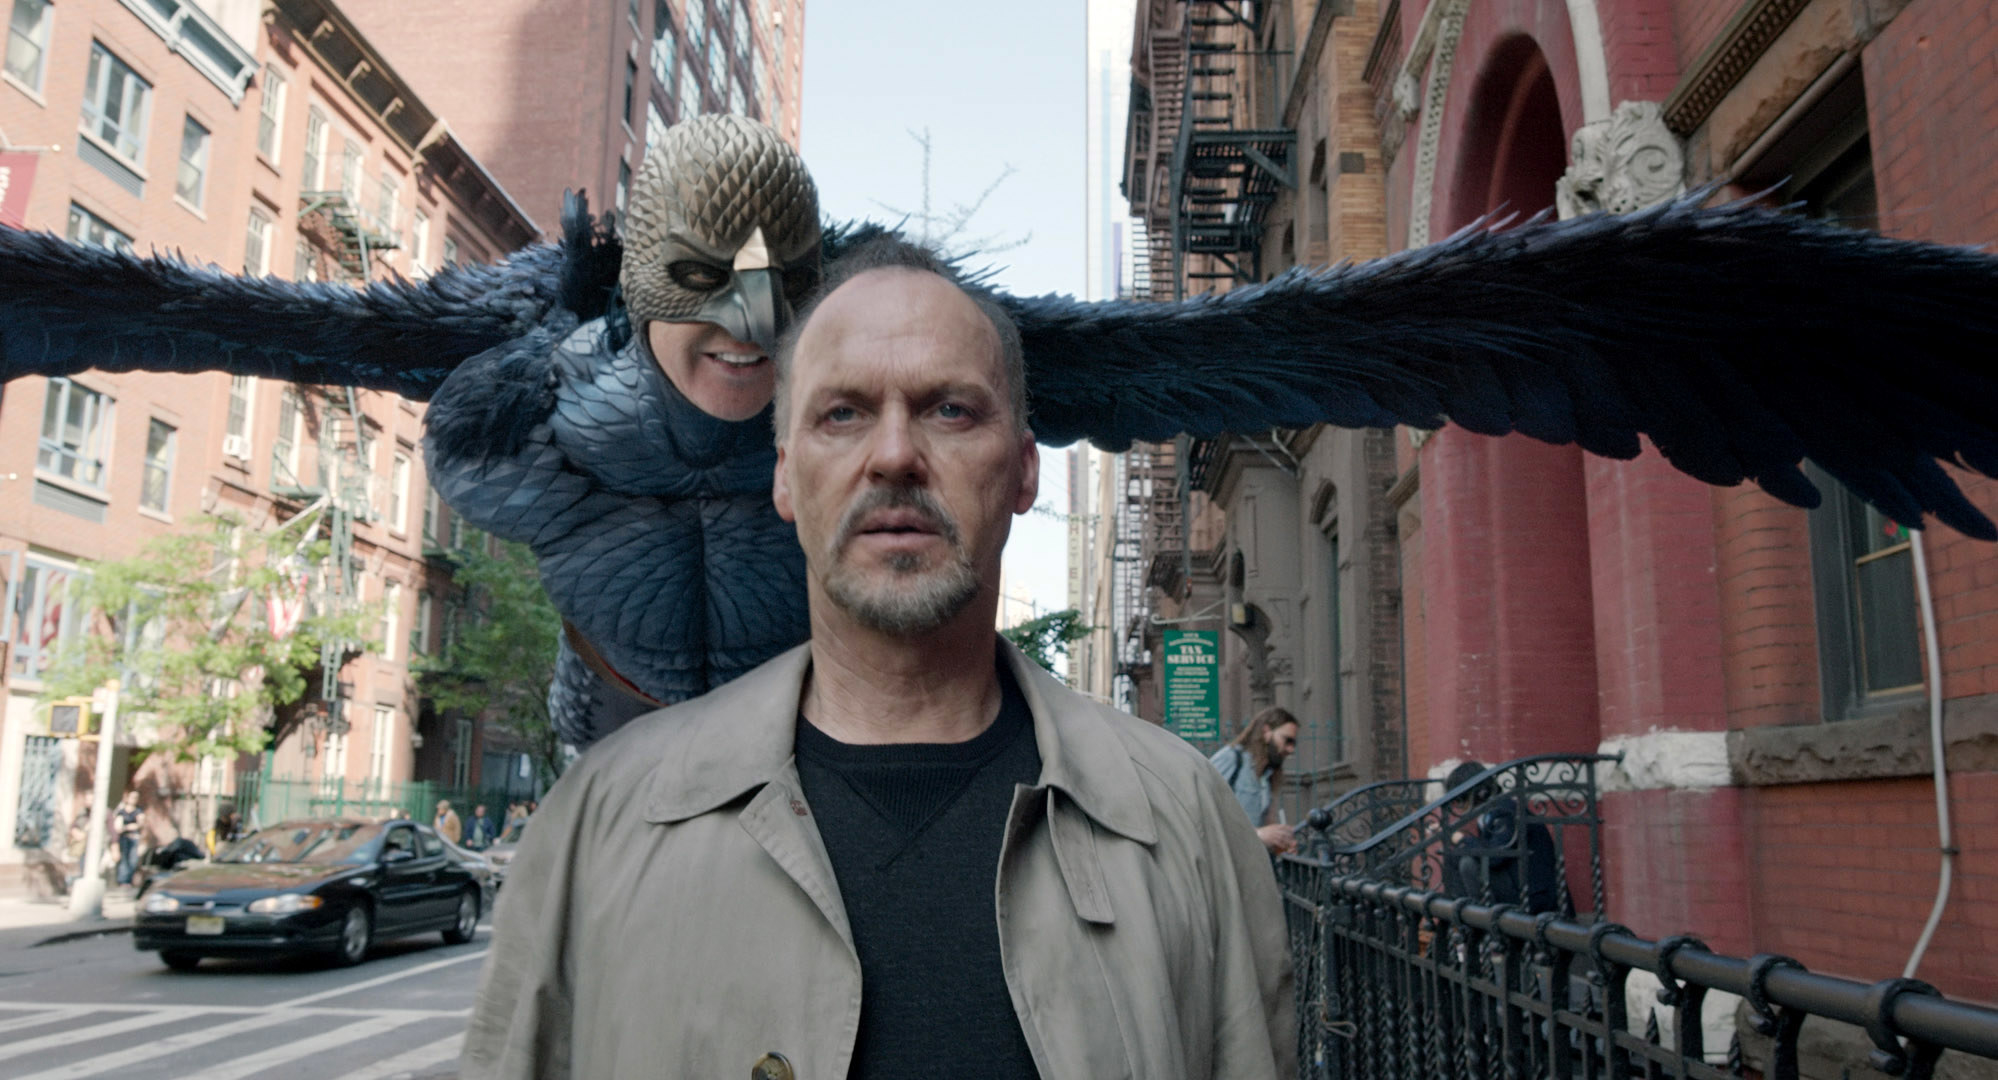 Michael Keaton on the street with his bird character behind him